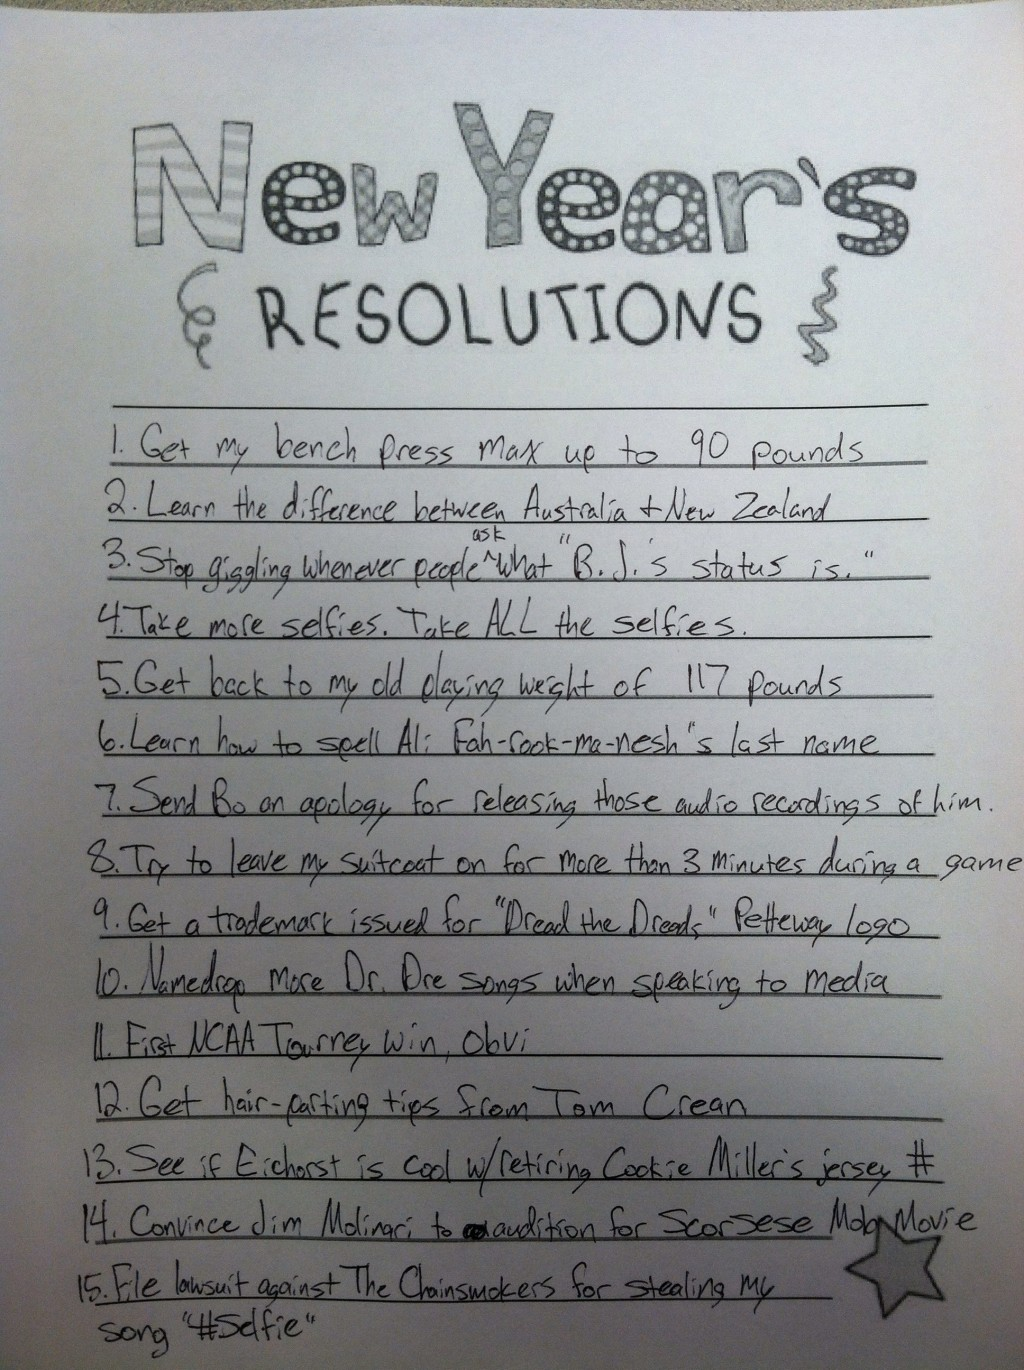 002 Img 40981 Essay Example My New Year Singular Resolution Student Tagalog In Hindi Large